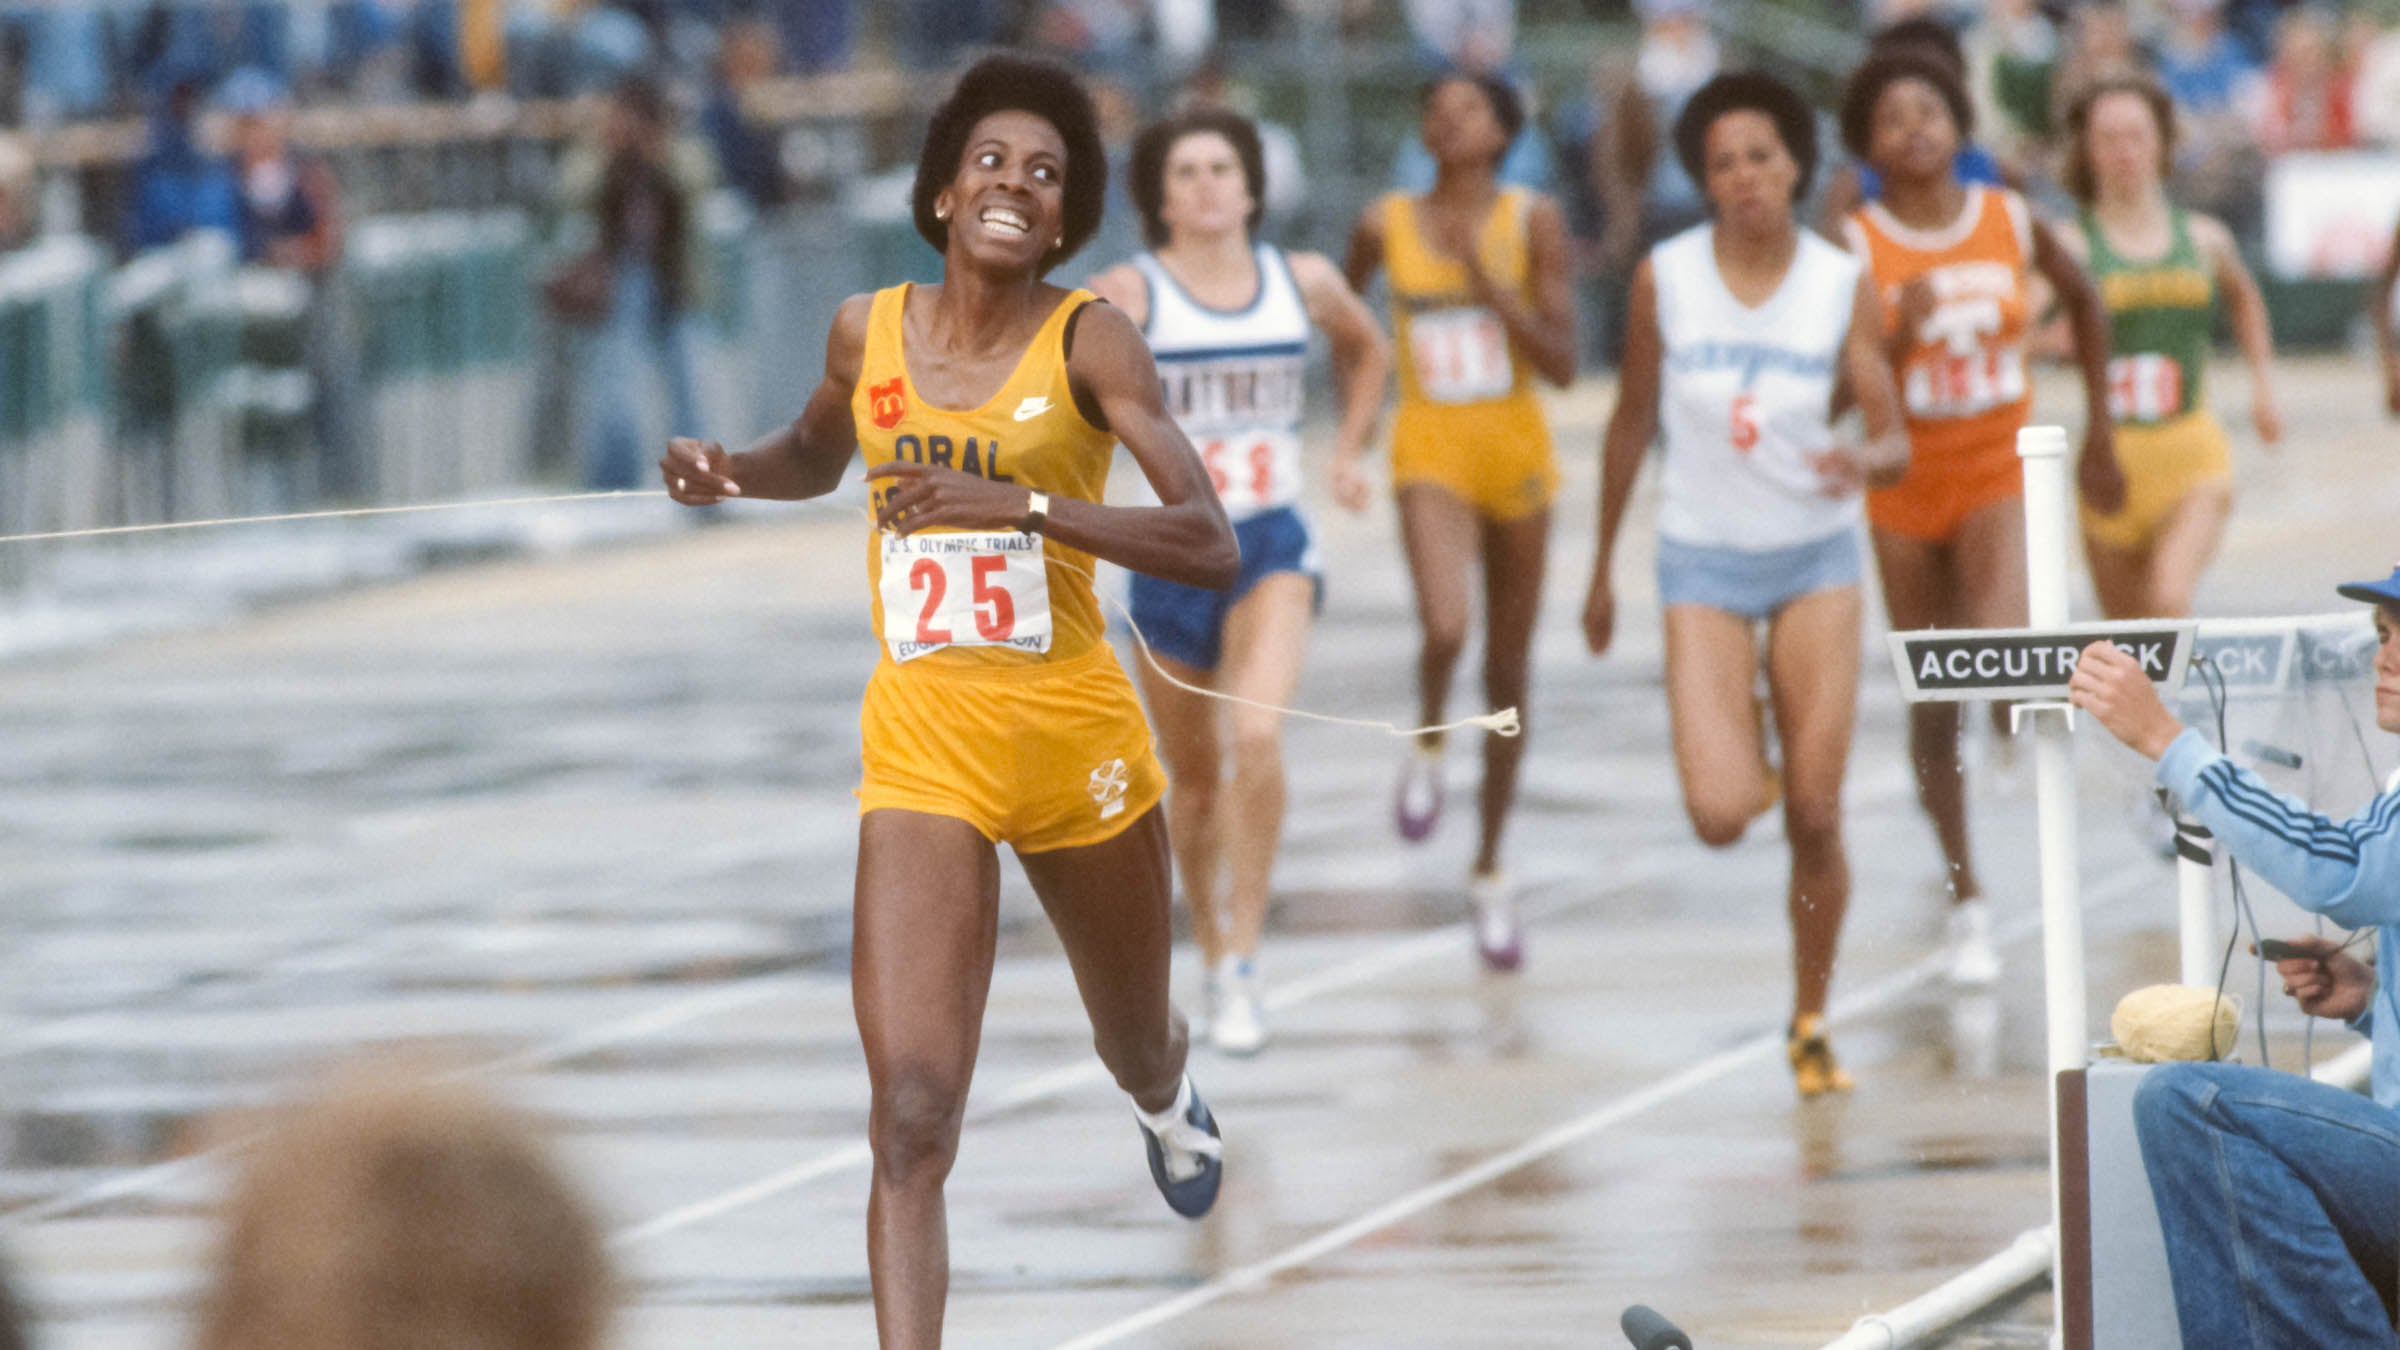 What the 1980 Olympics Can Teach Us About Race Cancellations